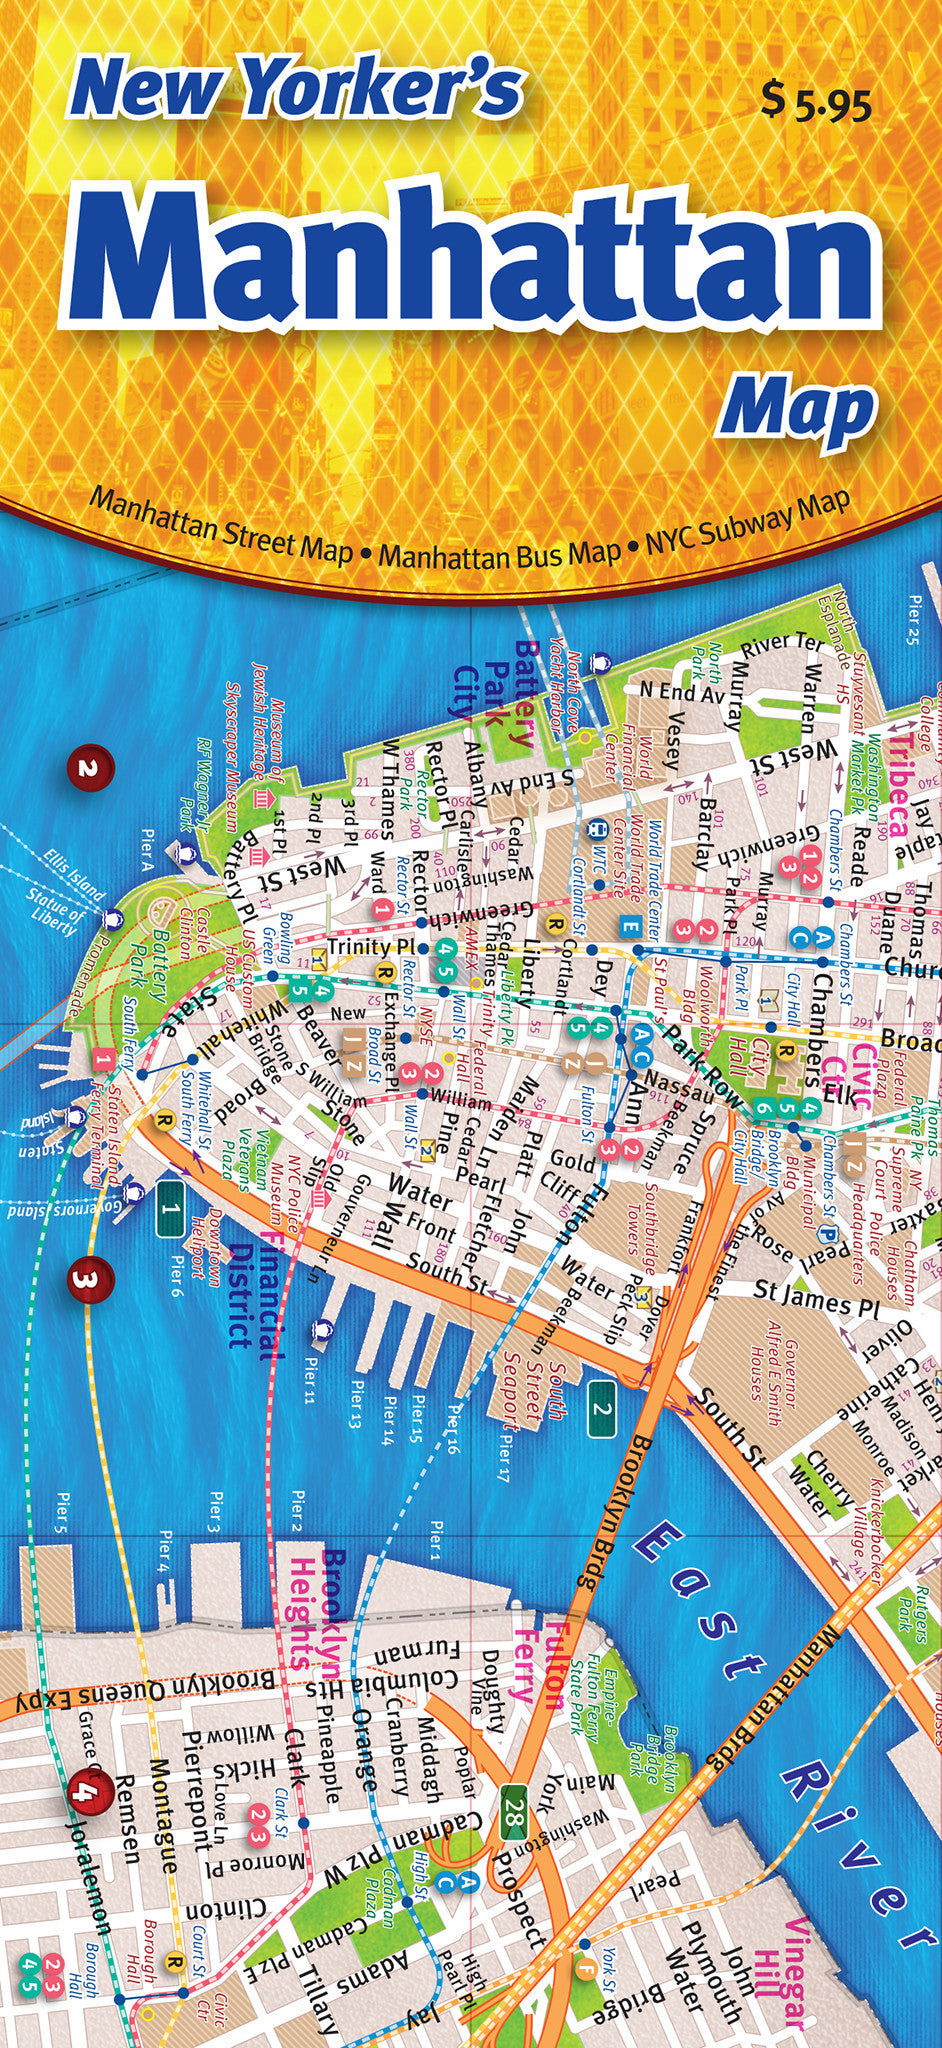 Cover image of the New Yorker's Manhattan Map.